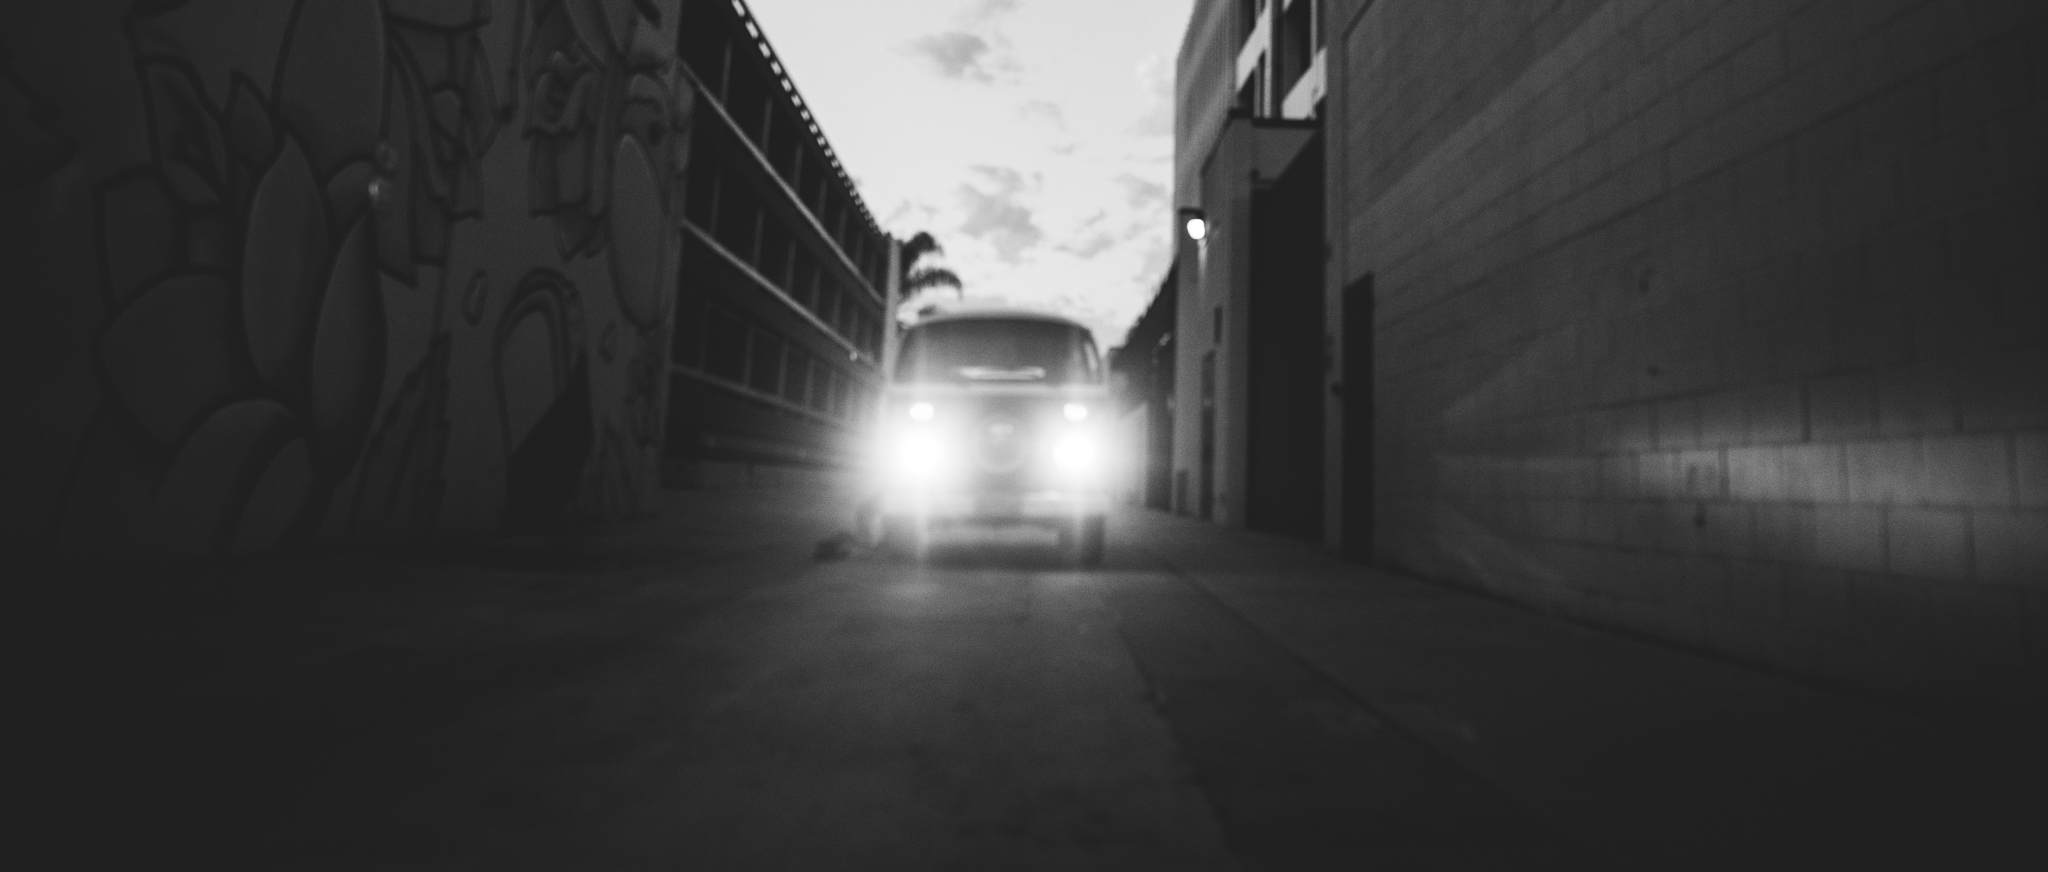 ©Isaiah & Taylor Photography - Los Angeles Photographer - Volkswagen VW Bus Engagement-23.jpg